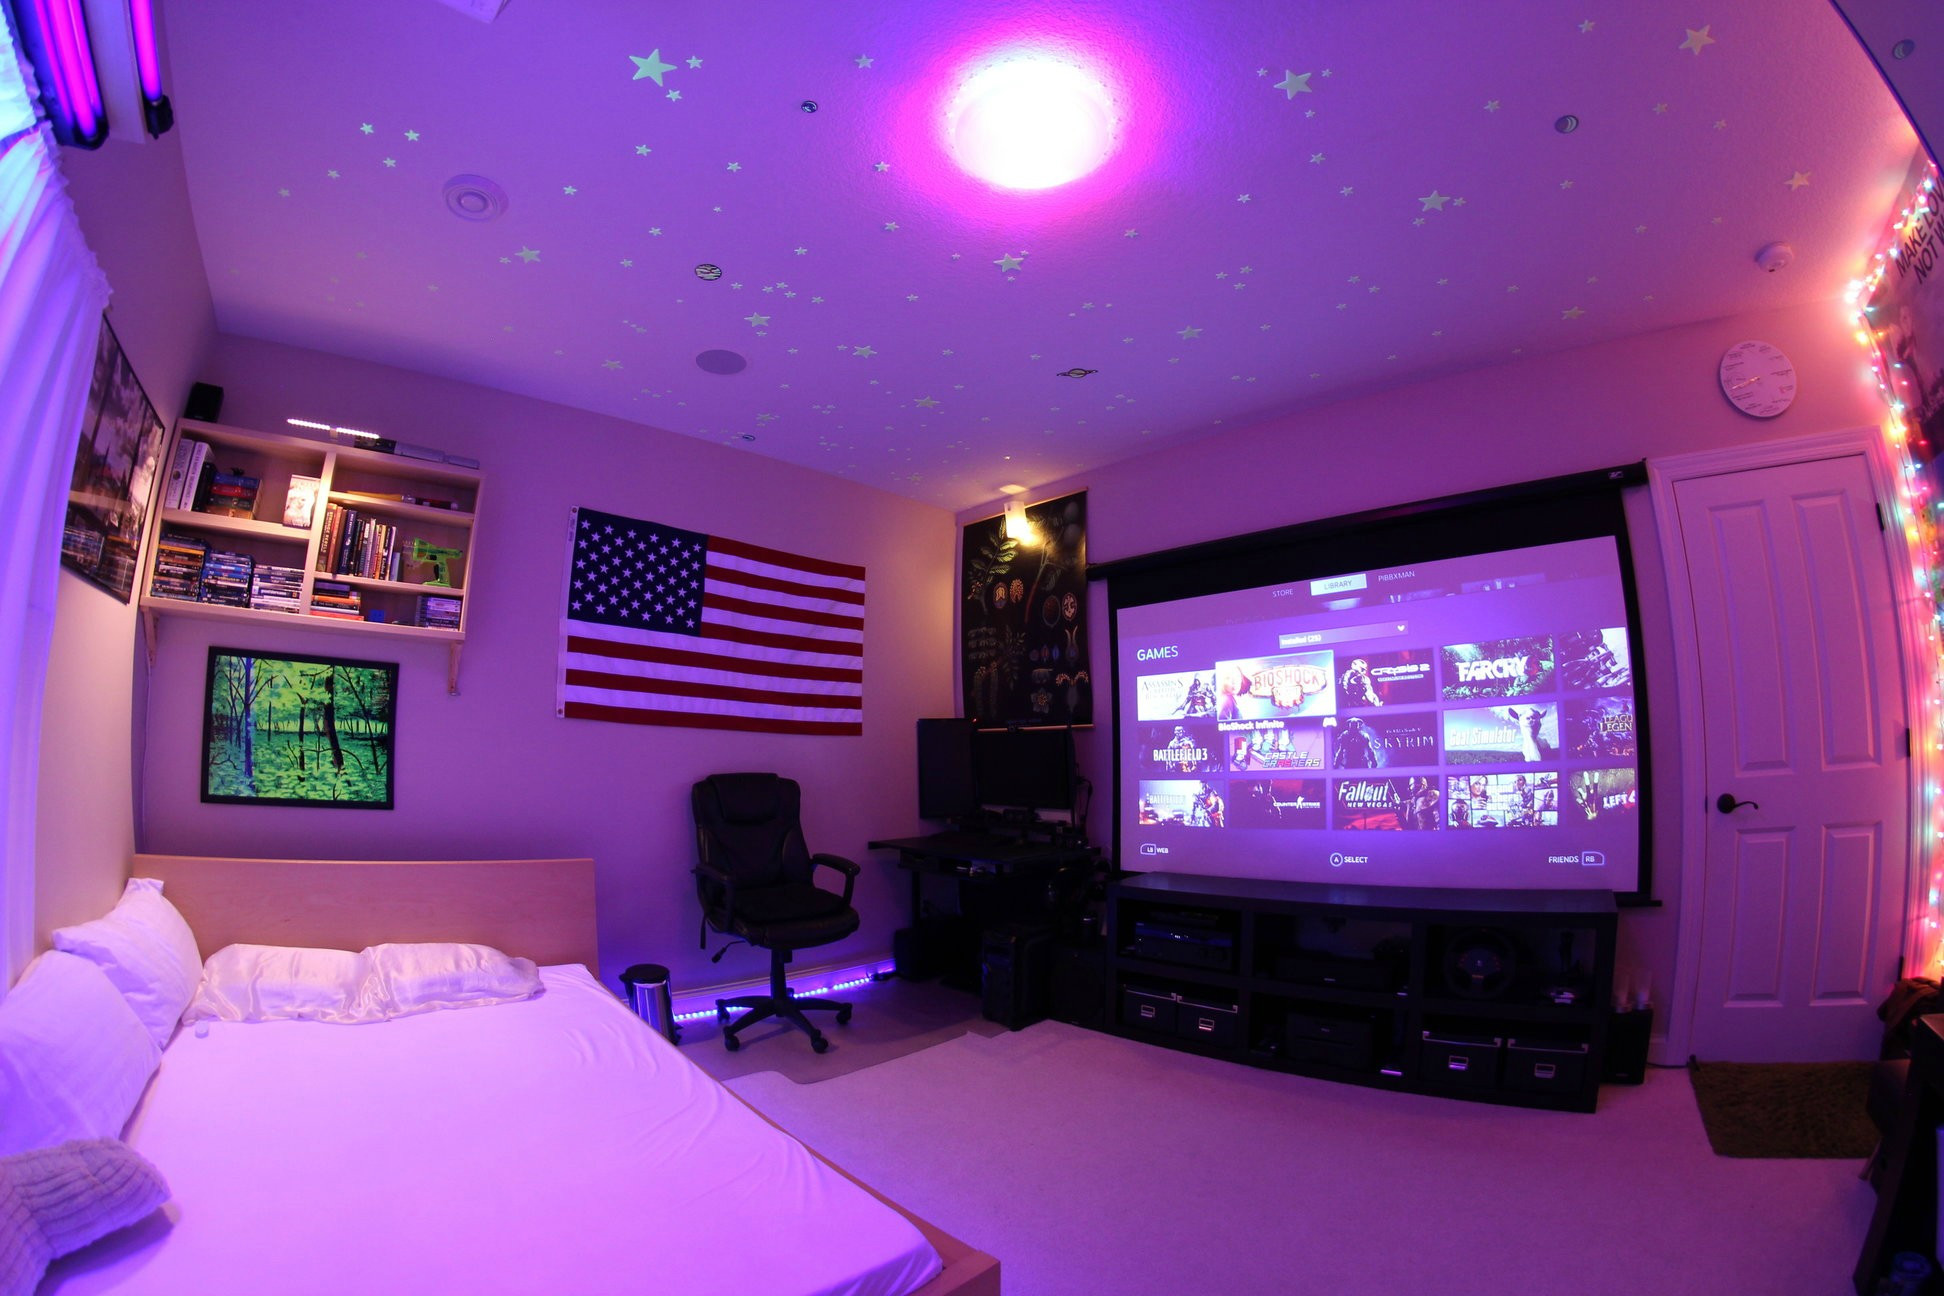 Best ideas about Small Game Room Ideas . Save or Pin 47 Epic Video Game Room Decoration Ideas for 2019 Now.